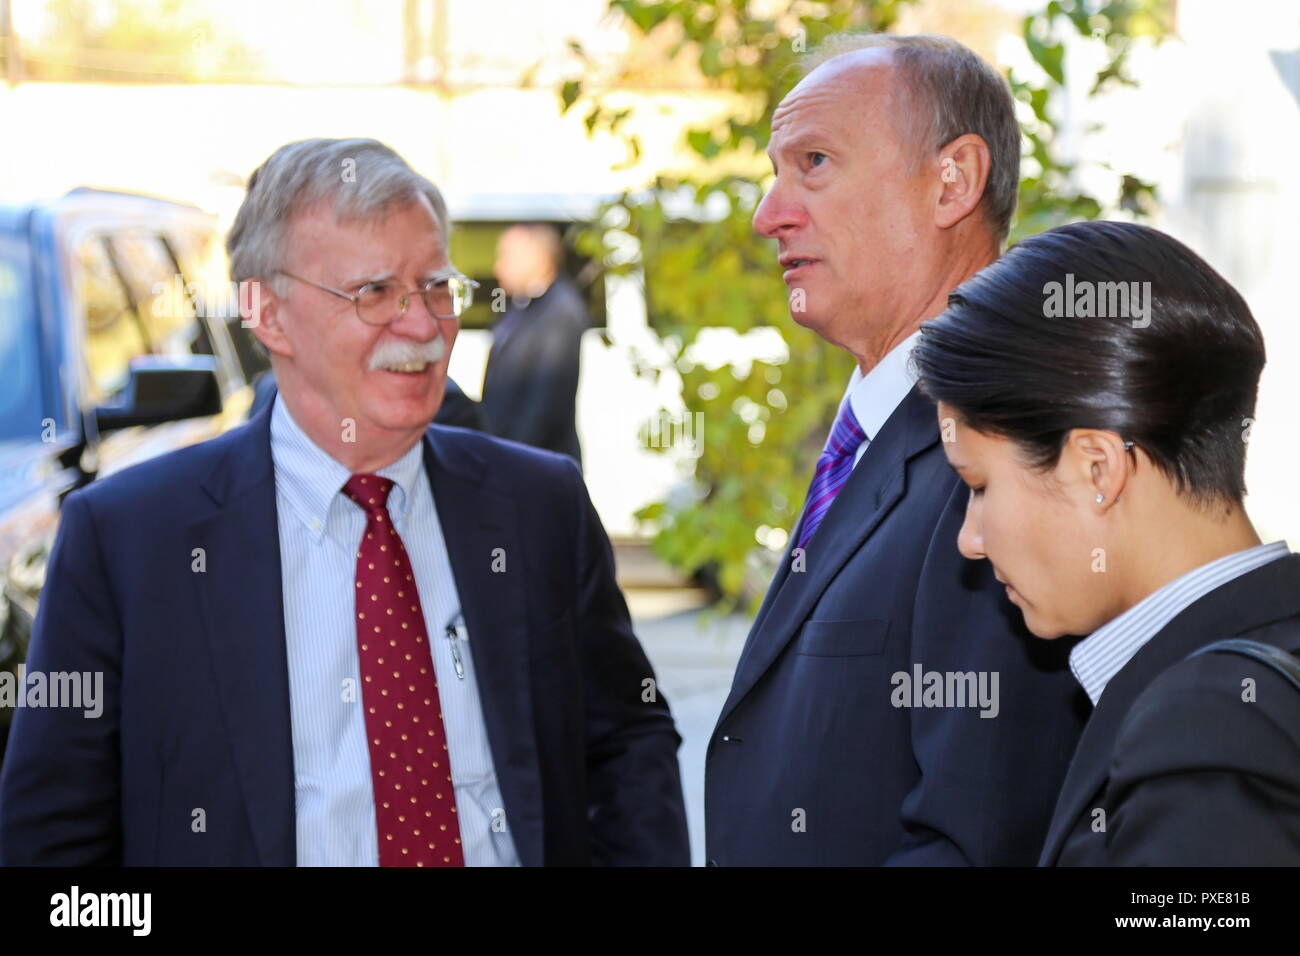 Moscow, Russia. 22nd Oct, 2018. MOSCOW, RUSSIA - OCTOBER 22, 2018: US National Security Adviser John Bolton and Russian Security Council Secretary Patrushev (L-R) during a meeting. Russian Security Council Press Office/TASS Credit: ITAR-TASS News Agency/Alamy Live News - Stock Image